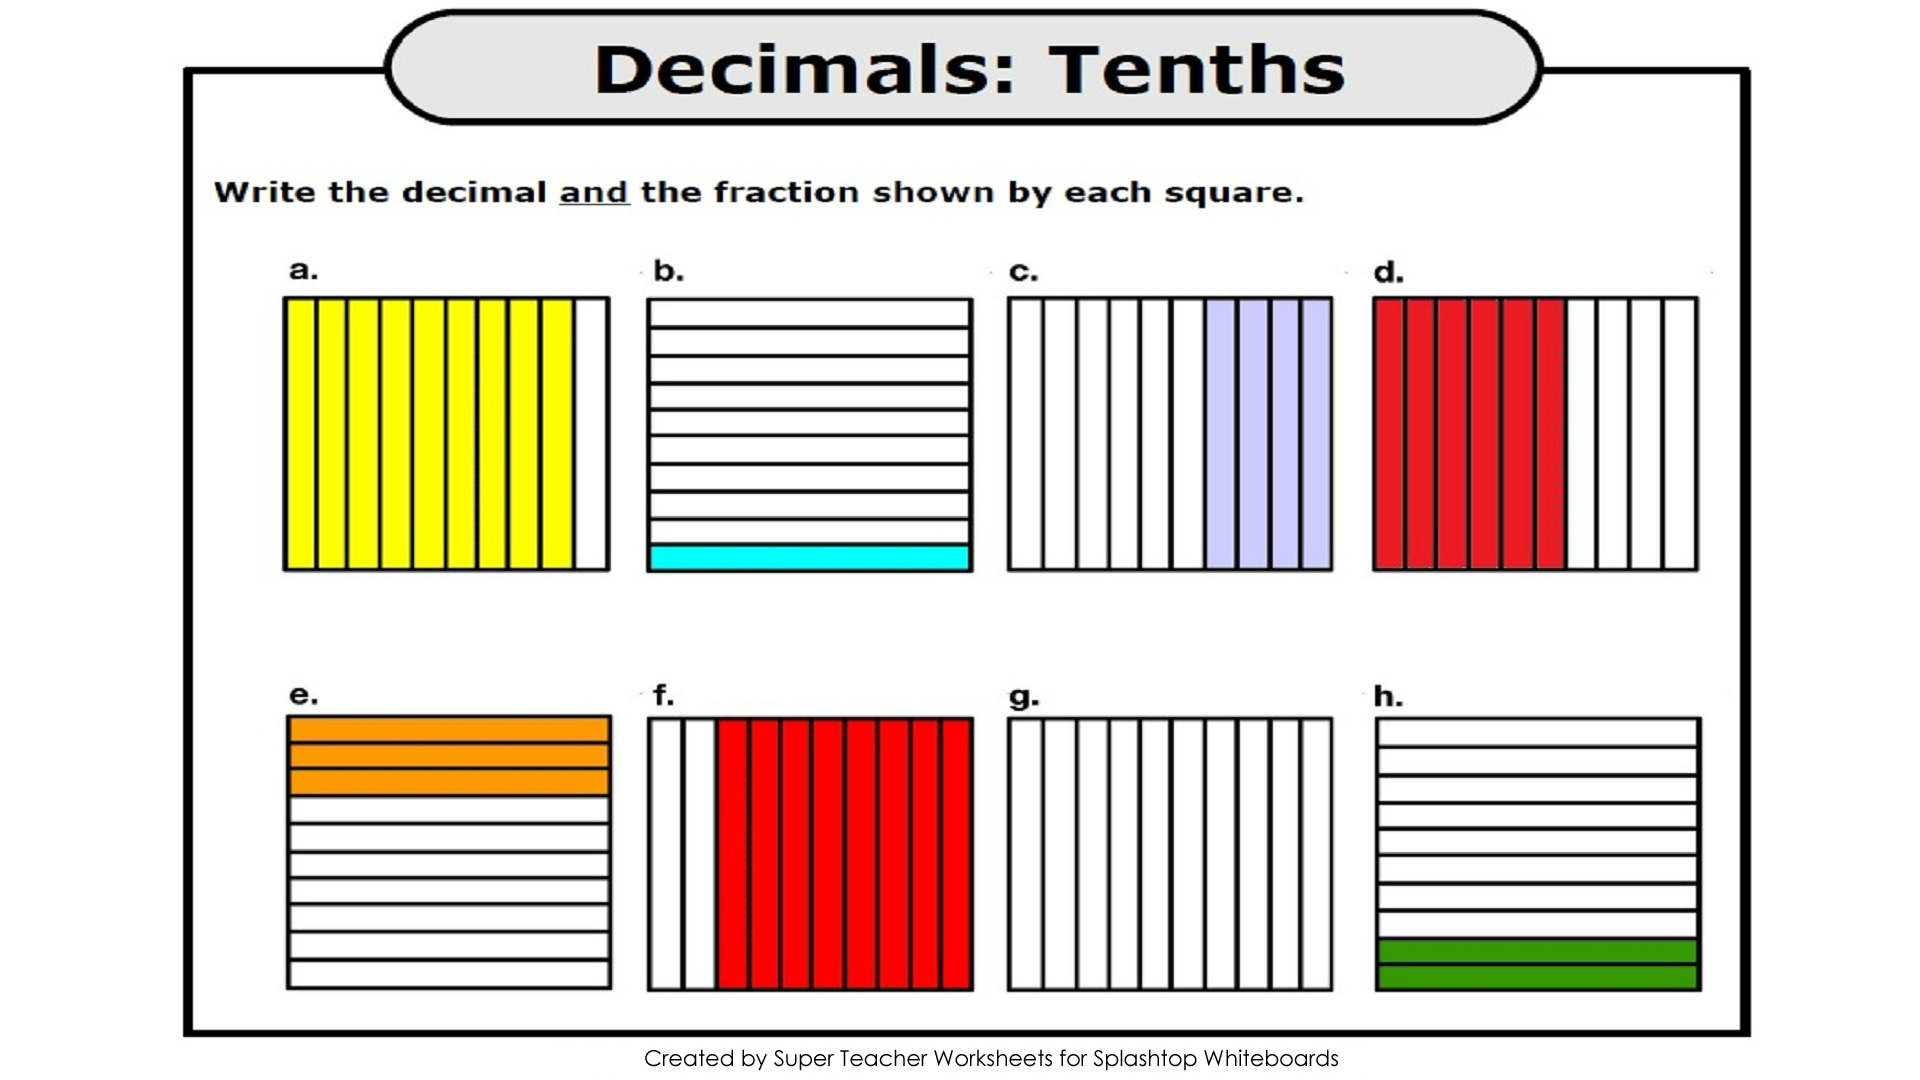 ... decimal shown by each picture. All decimal pictures represent tenths